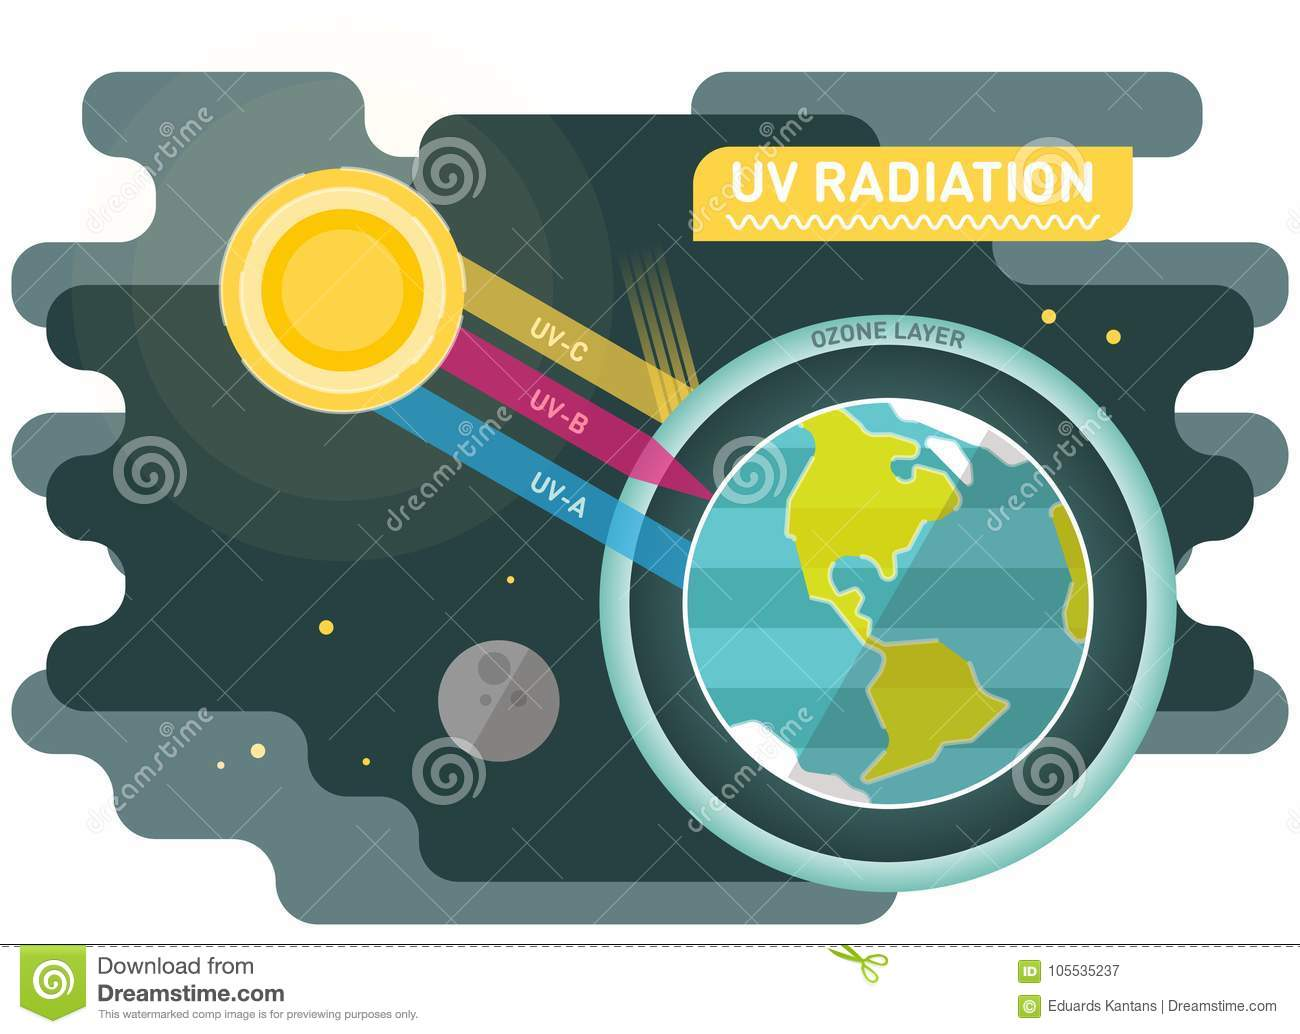 hight resolution of uv radiation diagram graphic vector illustration with sun and planet earth